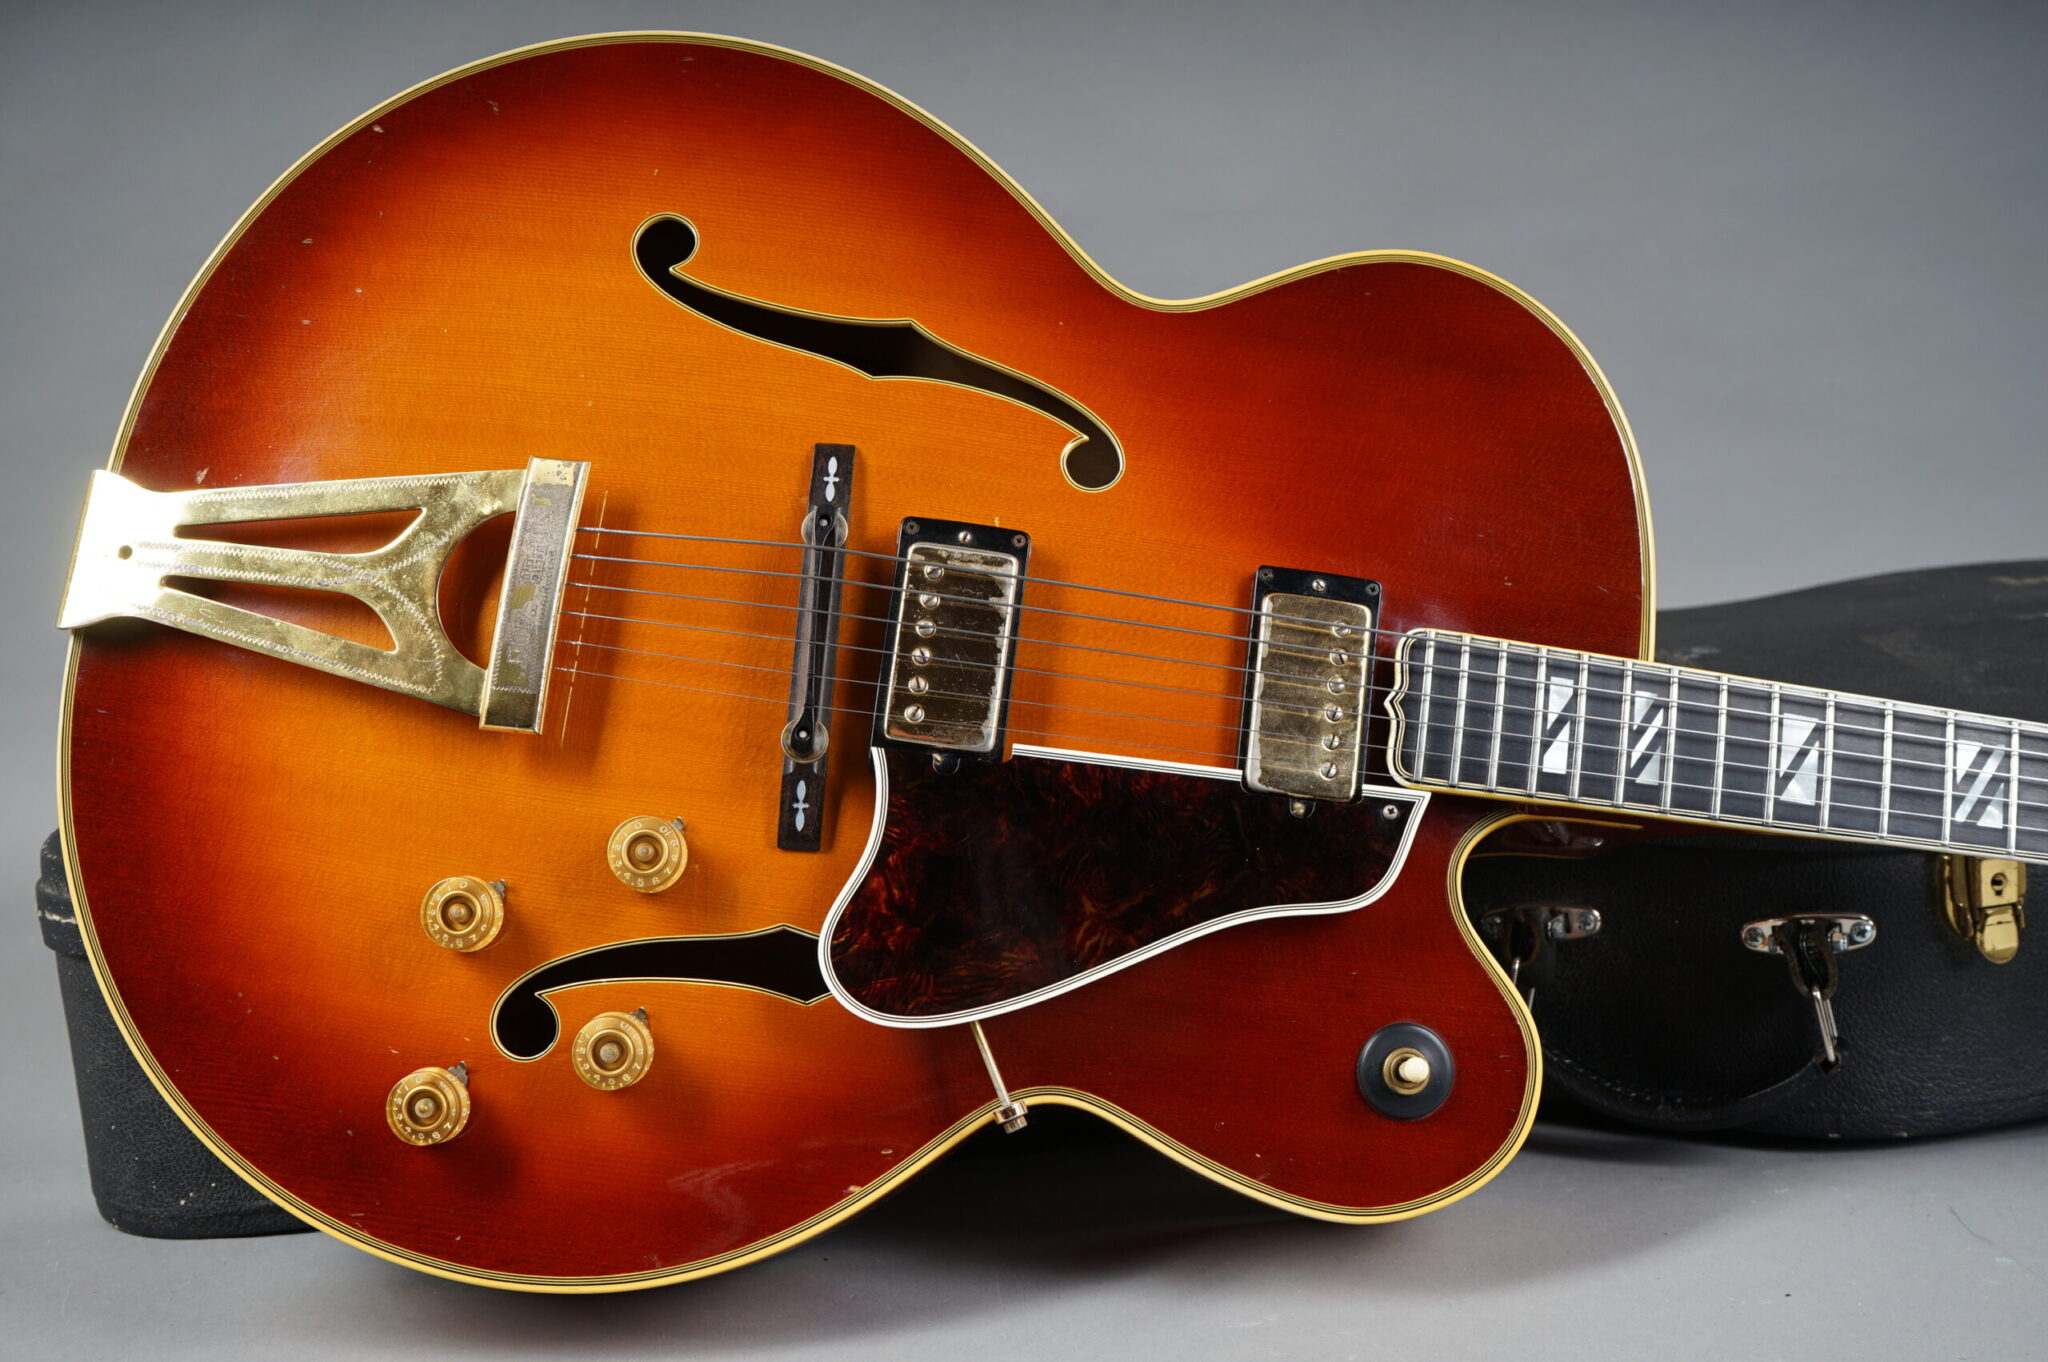 https://guitarpoint.de/app/uploads/products/1970-gibson-super-400-ces-963189/1969-Gibson-Super-400-CES-963189-10-scaled-2048x1362.jpg